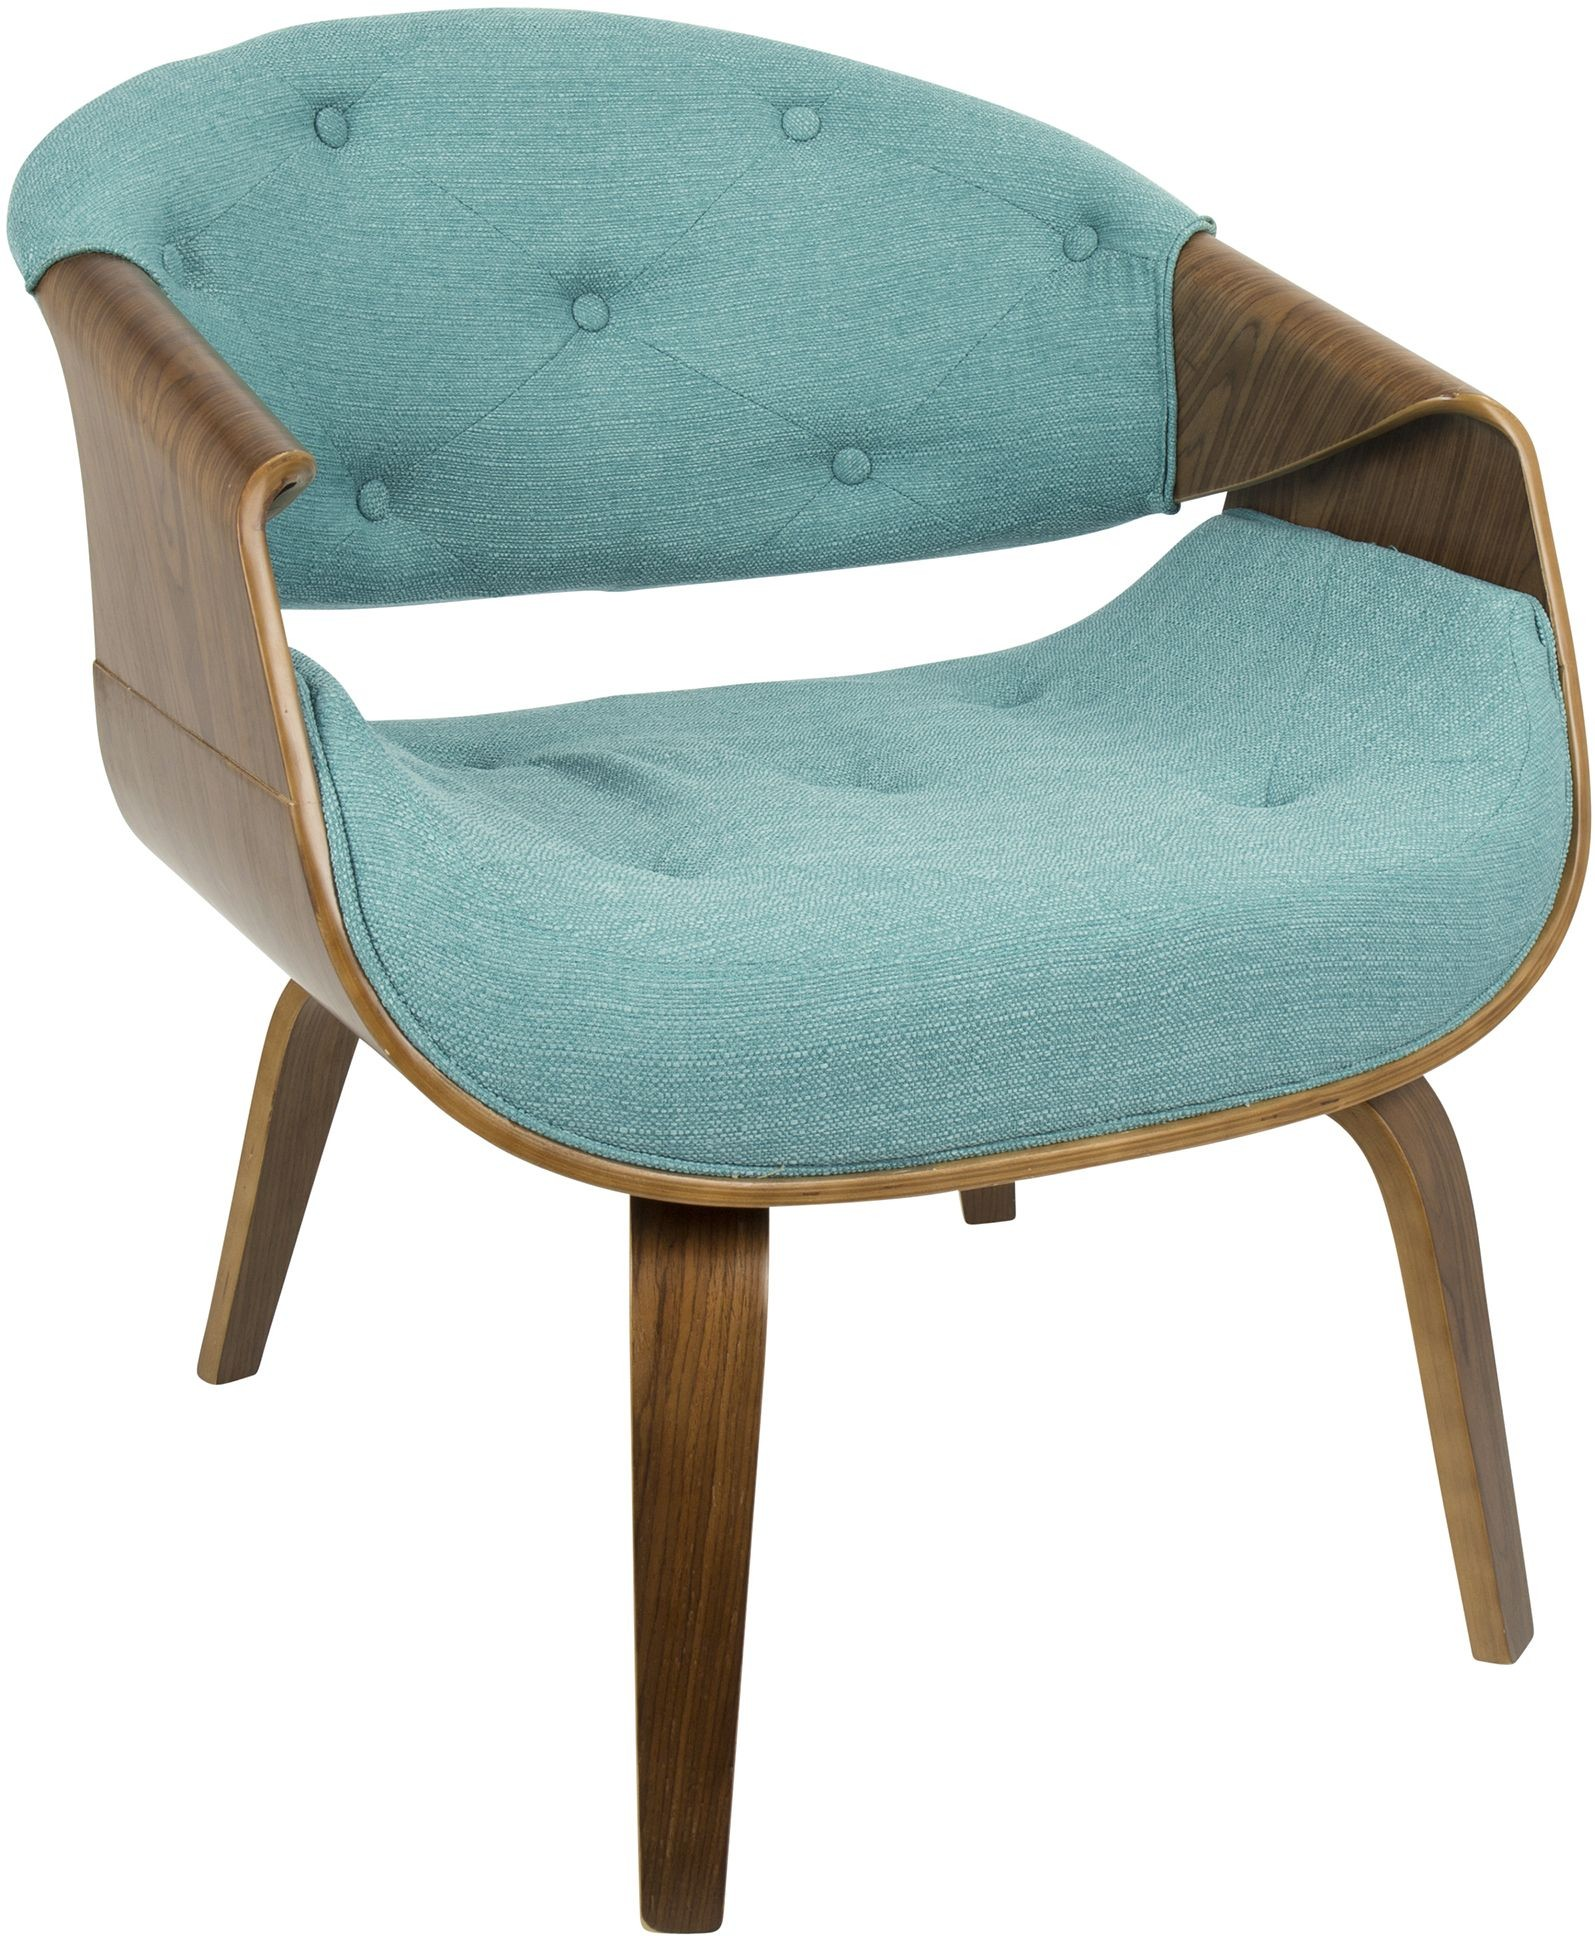 Curvo Walnut and Teal Tufted Accent Chair from Lumisource